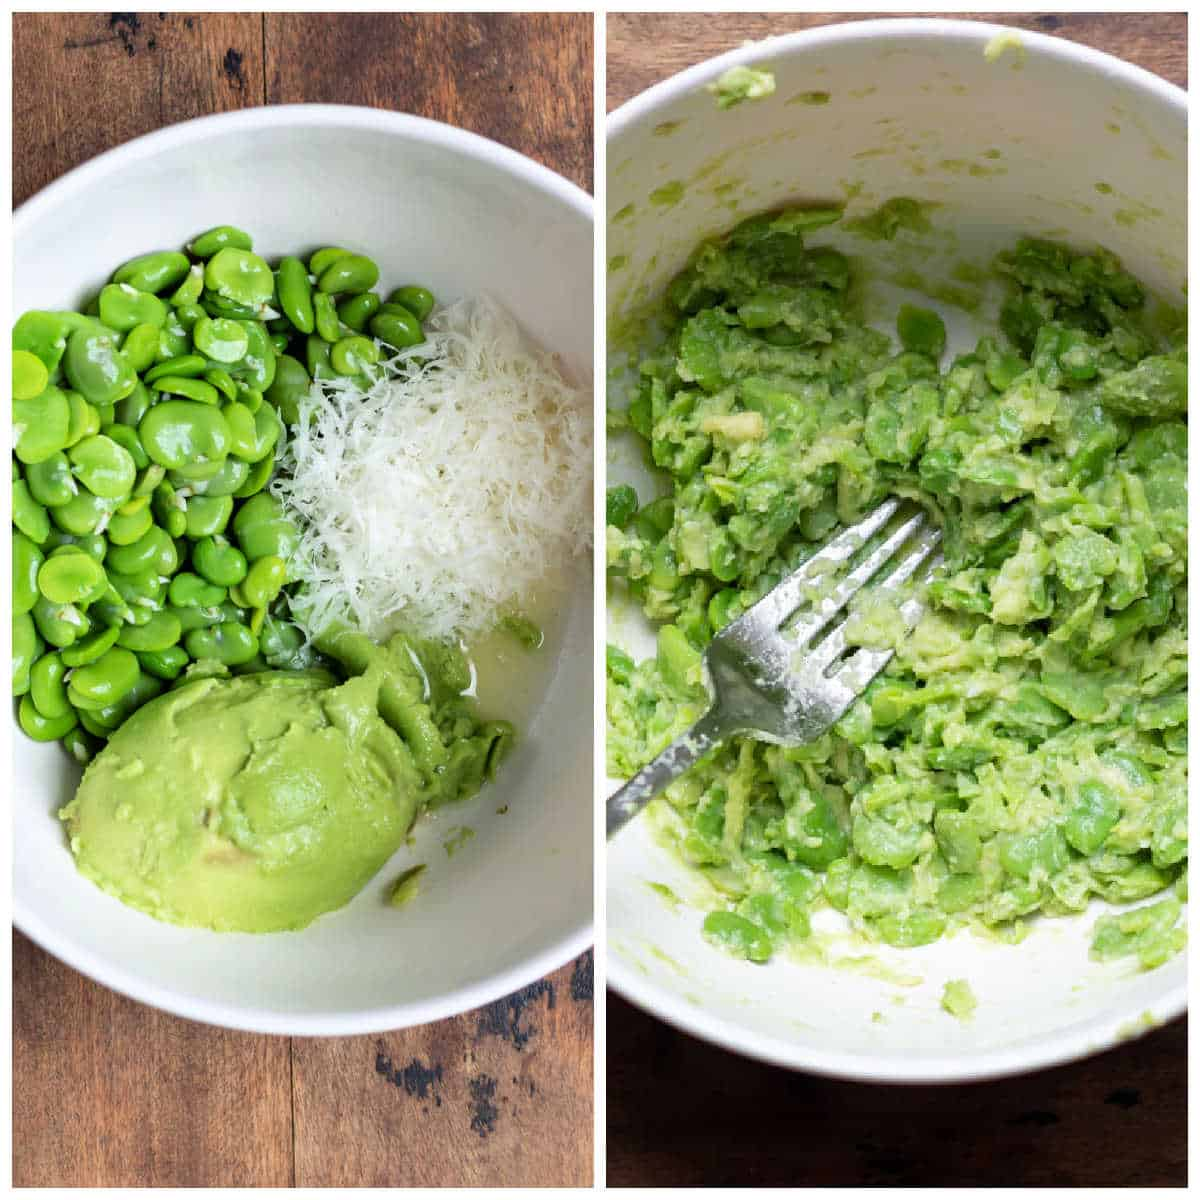 Making avocado broad bean topping in a bowl.